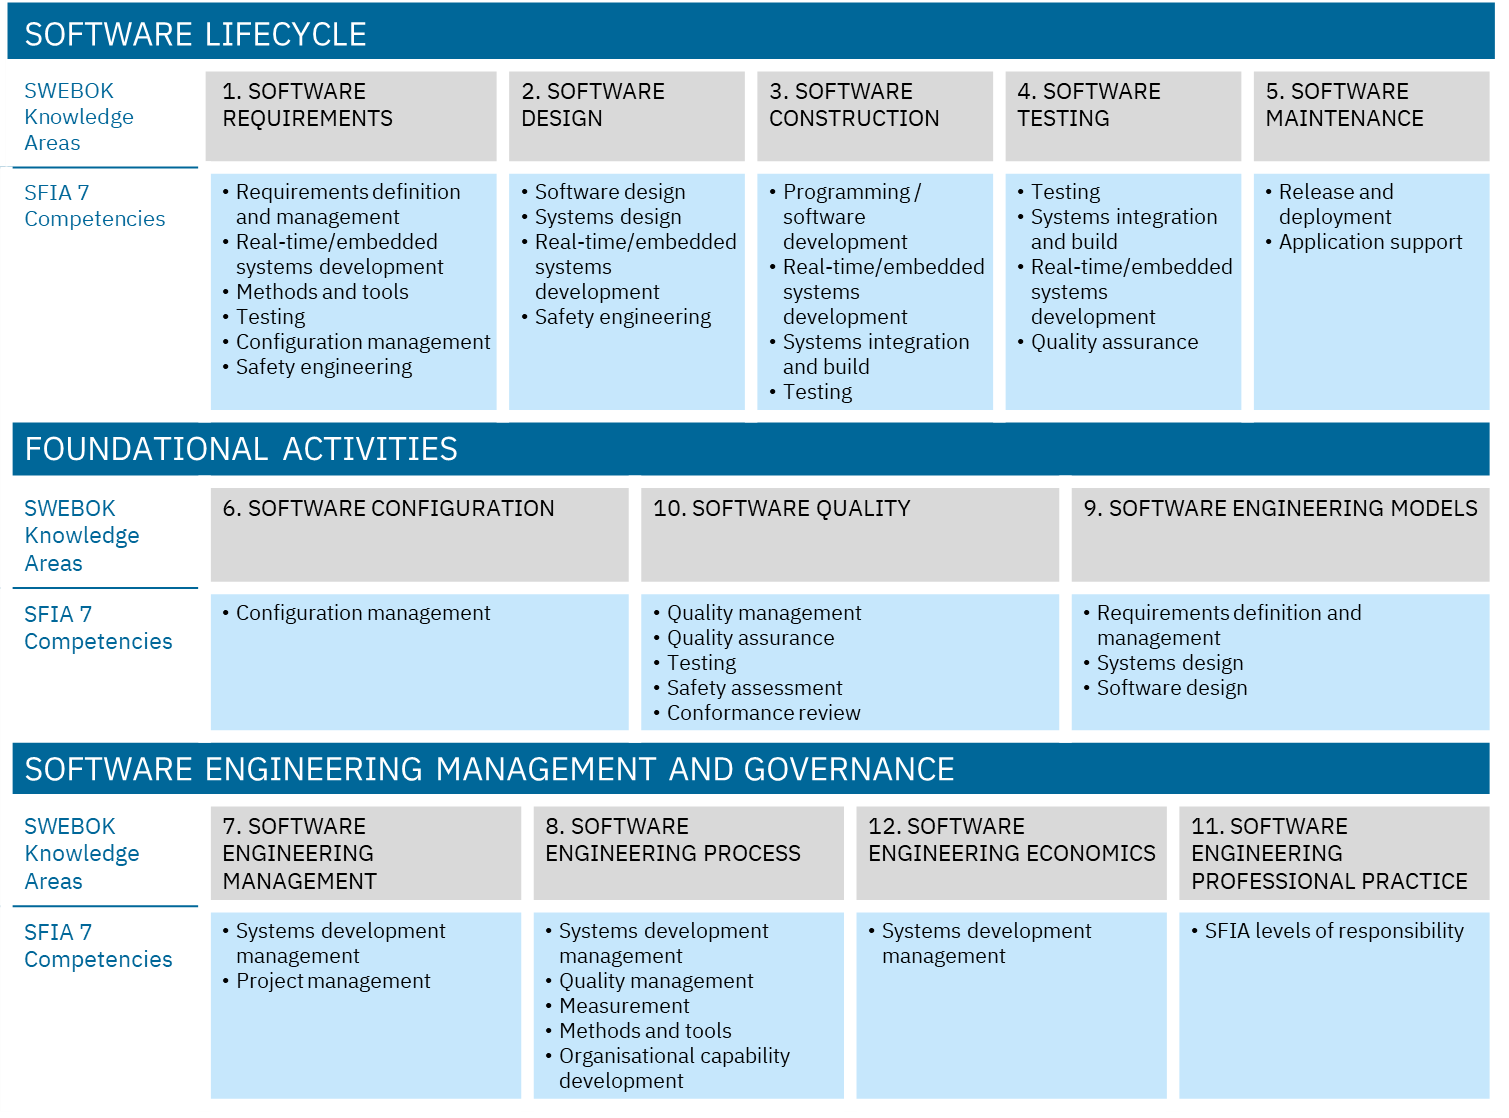 SWECOM Knowledge Areas and Competencies.png